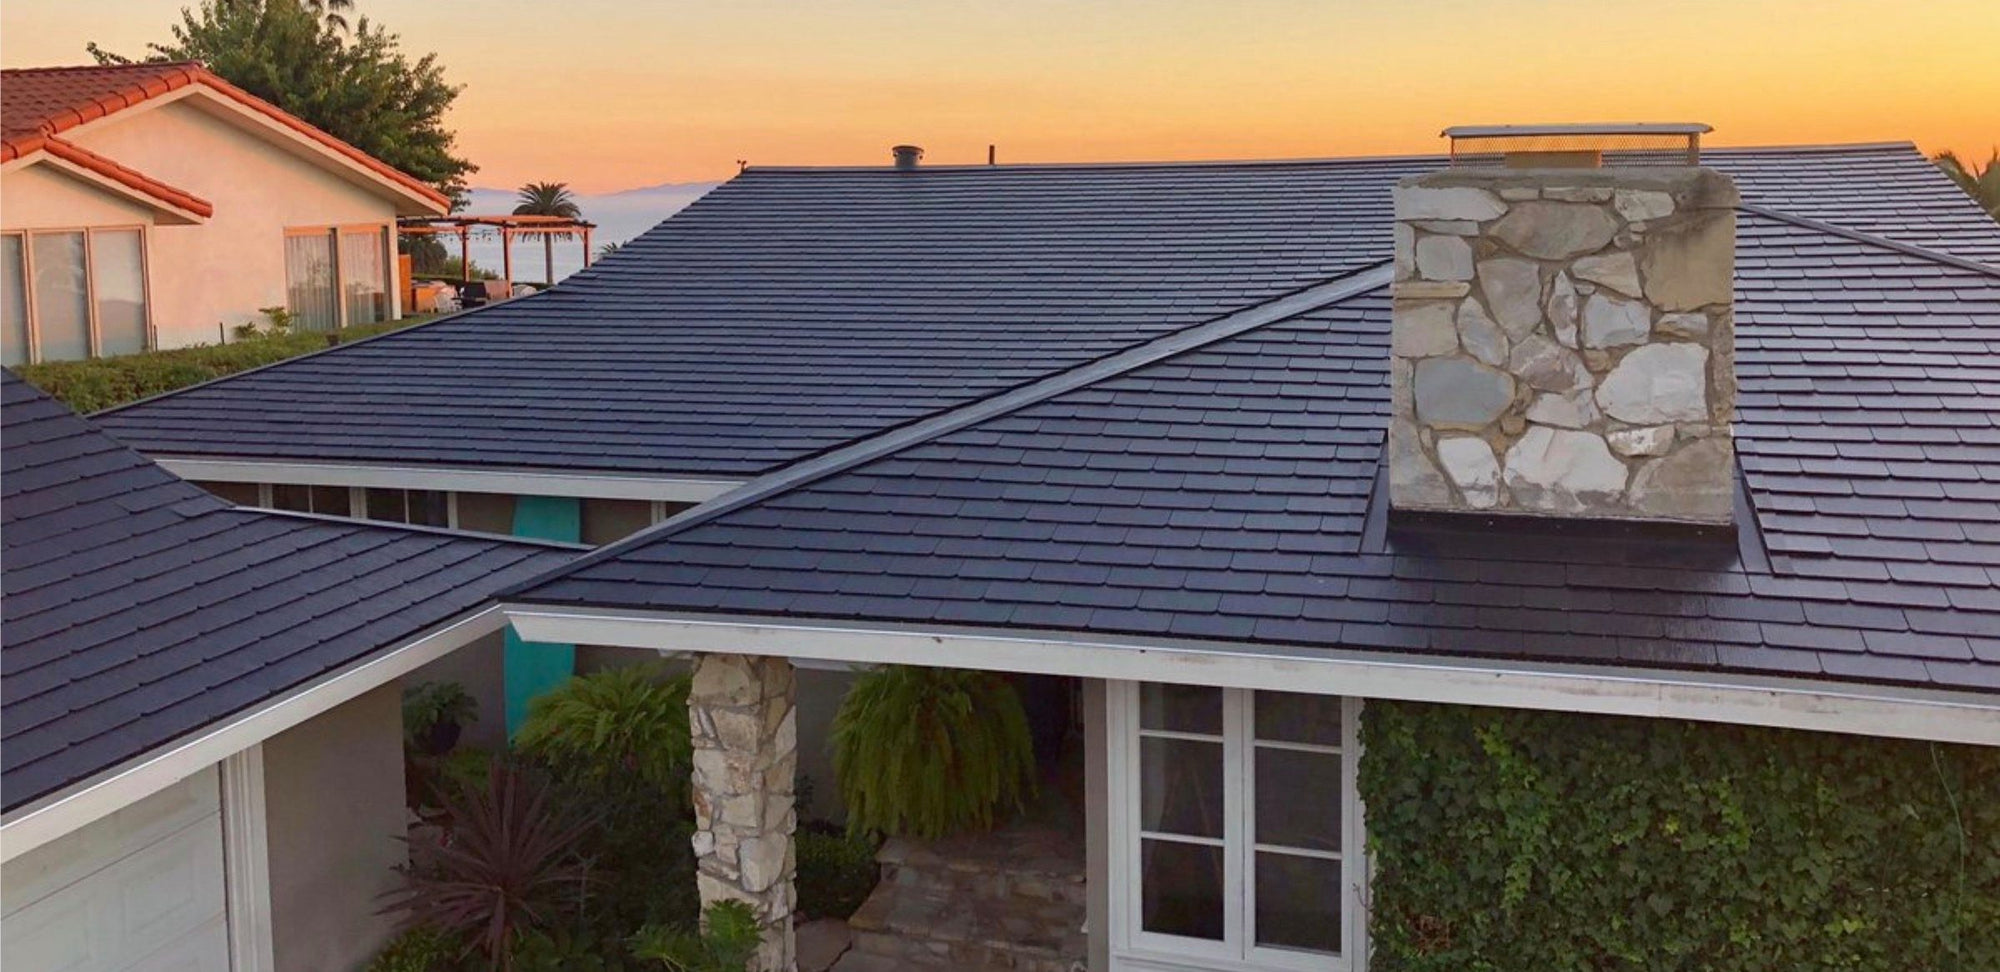 Tesla Energy Business Continues to Grow, as Solar Roof will soon be Deployed in Australia